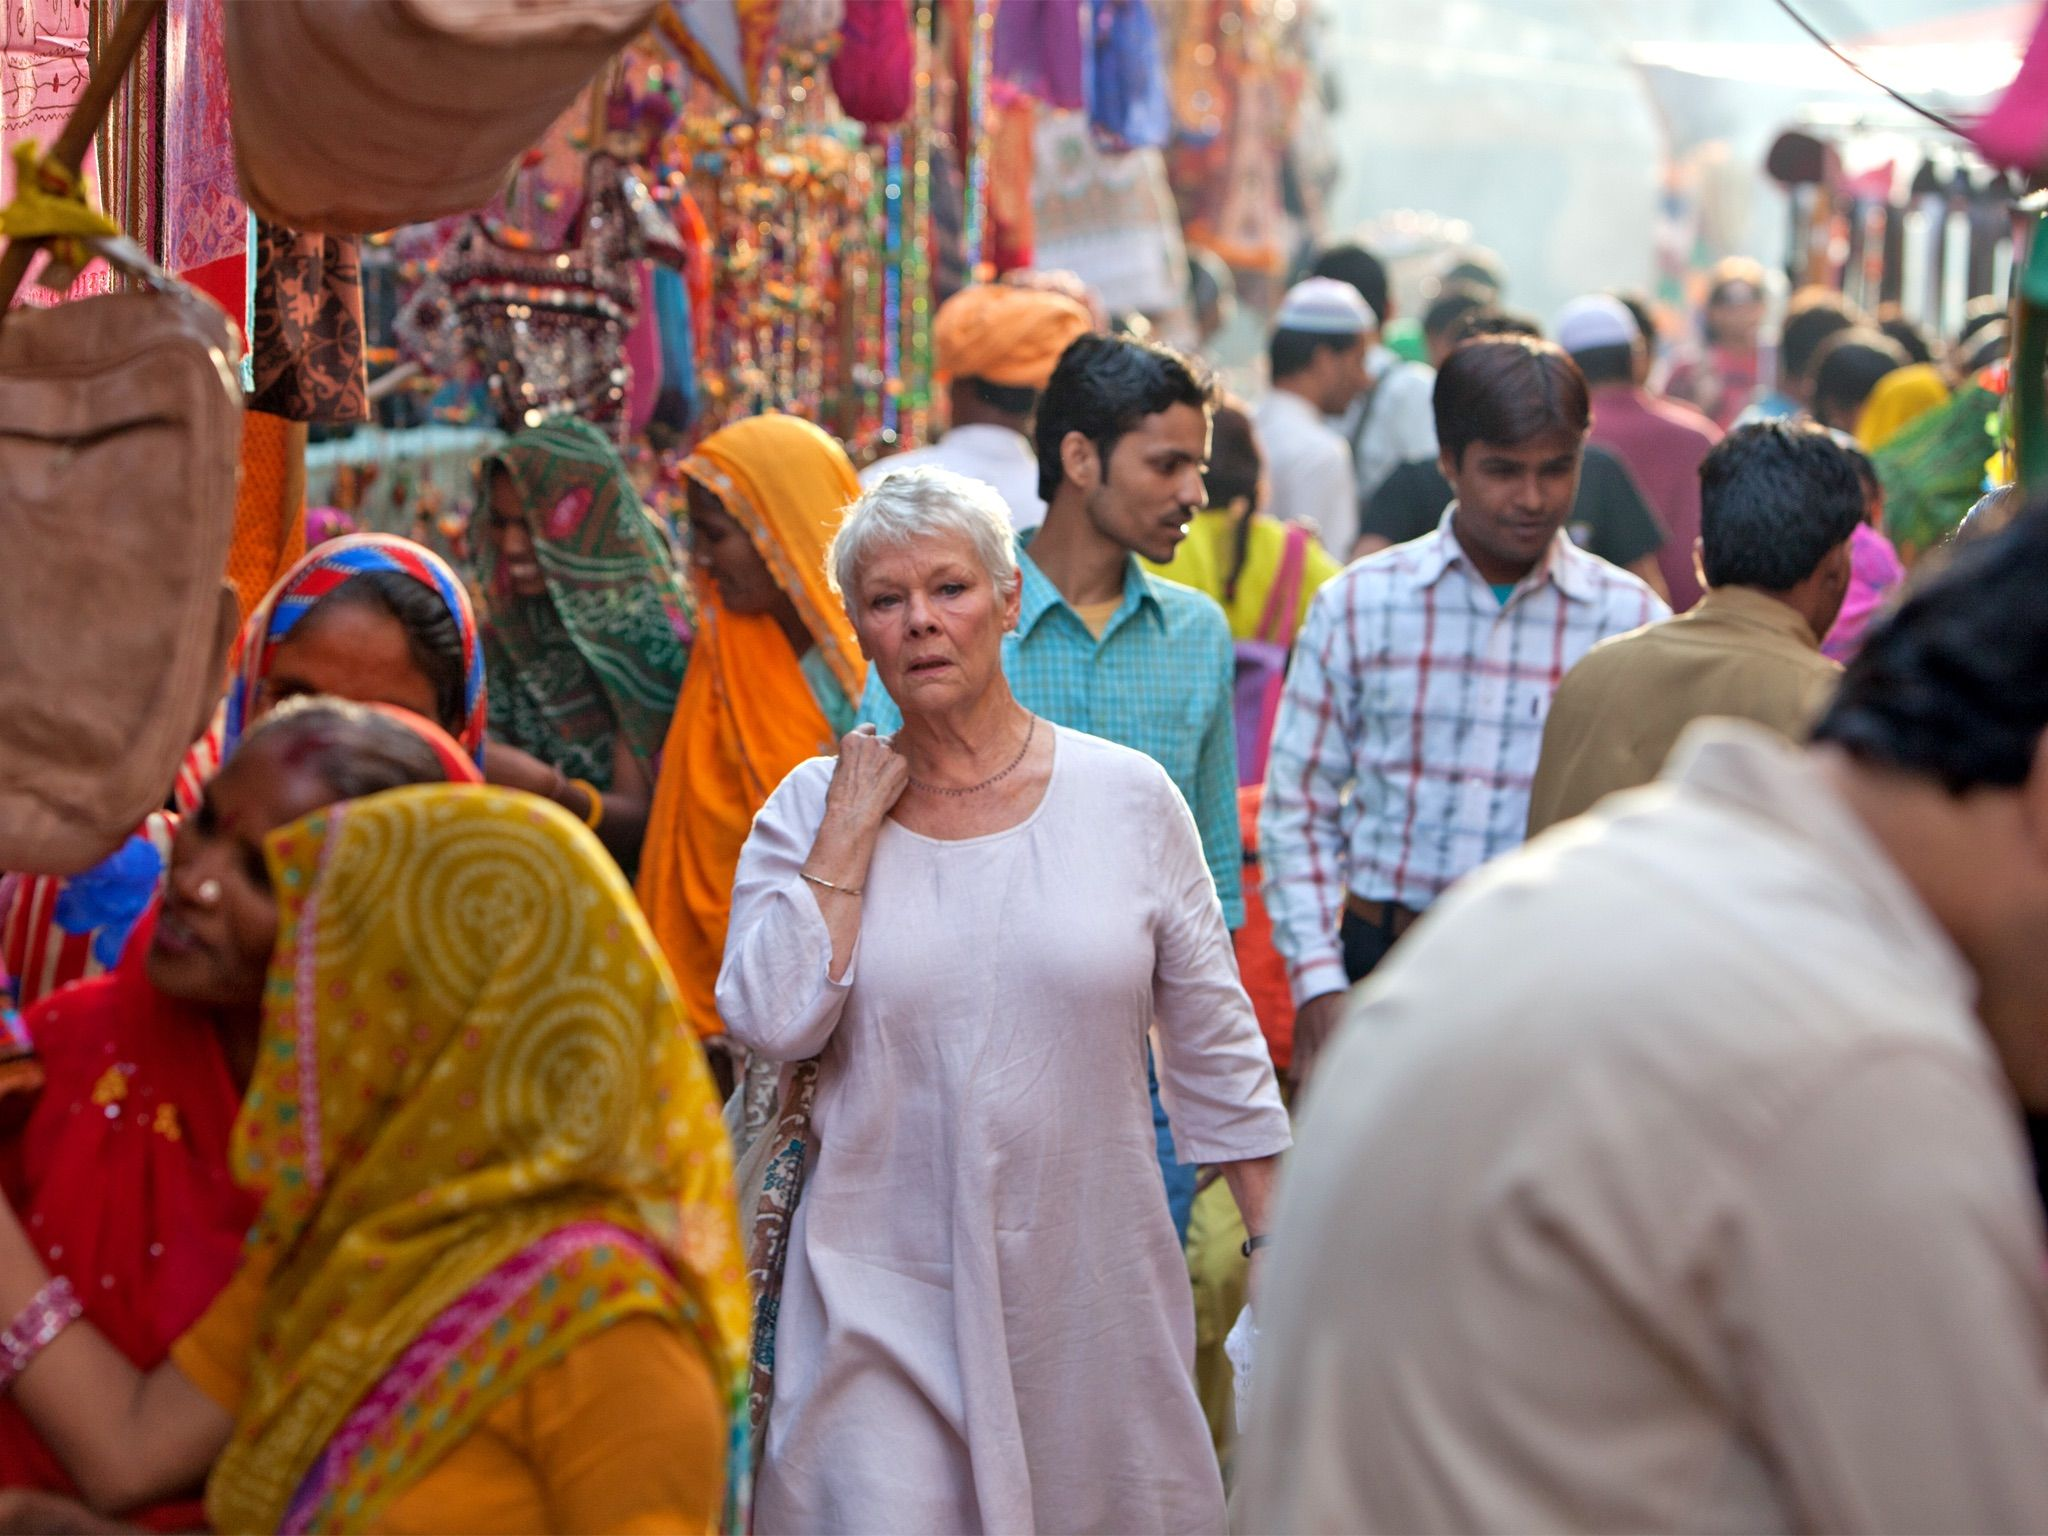 Judi Dench in an Indian Marketplace